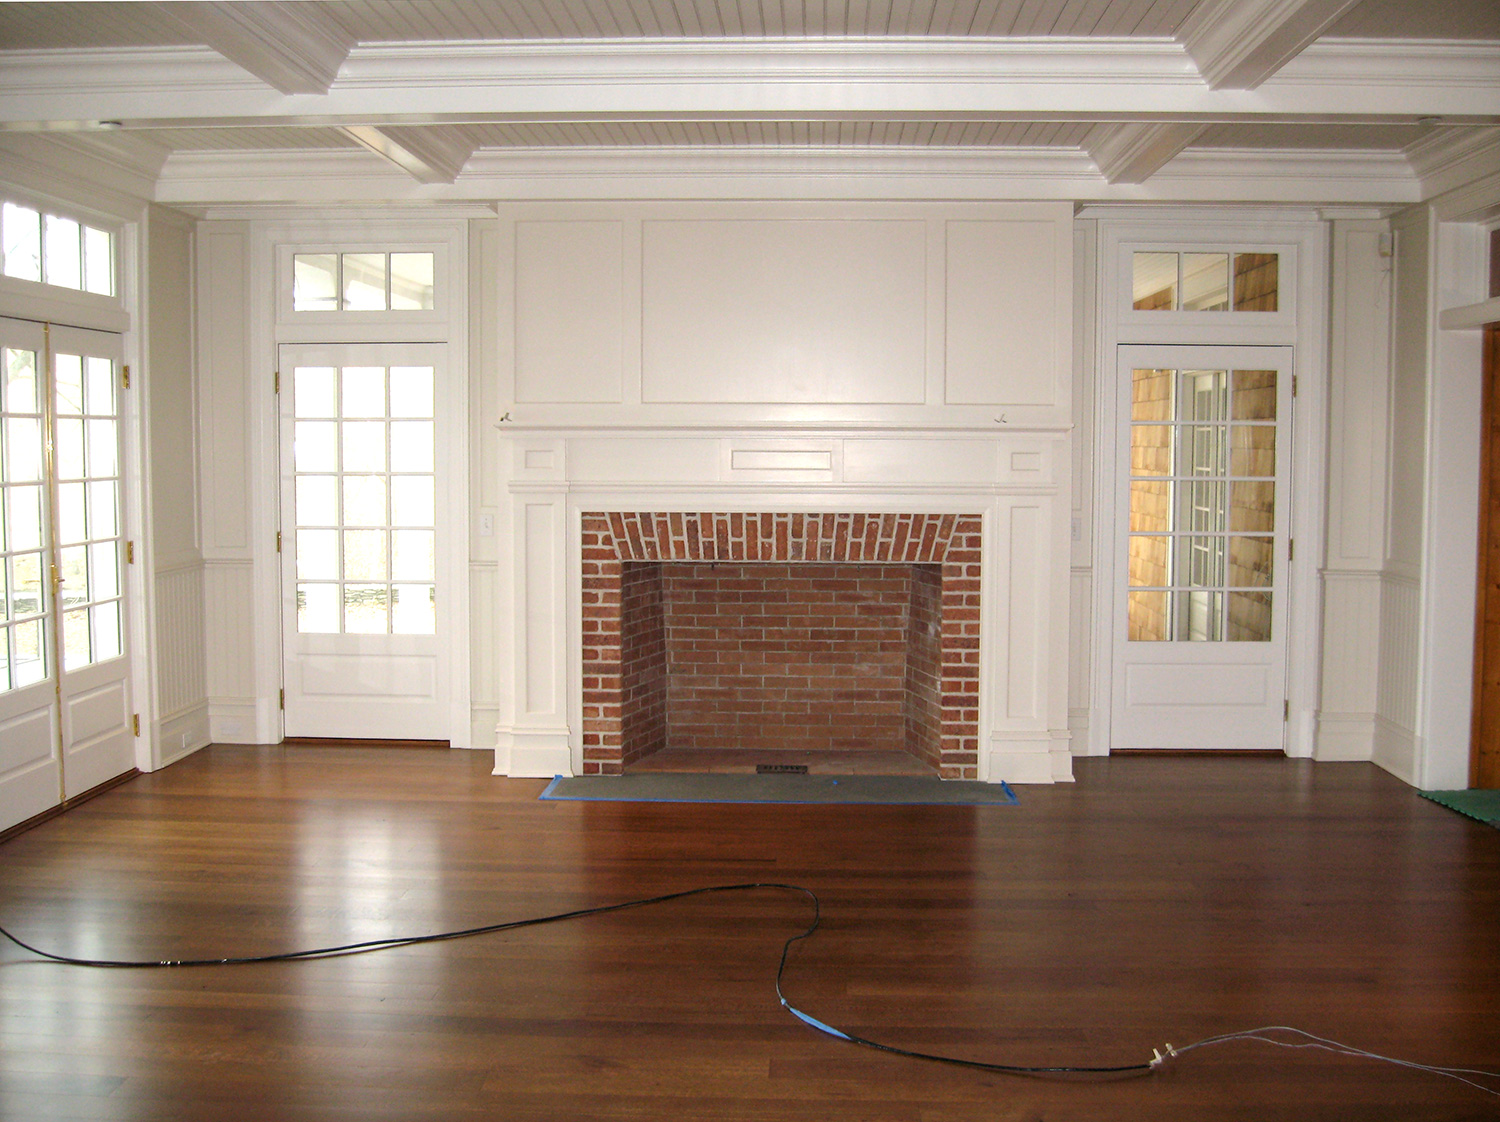 Panel and coffered ceiling set off this fireplace. Hillsdale, NY.